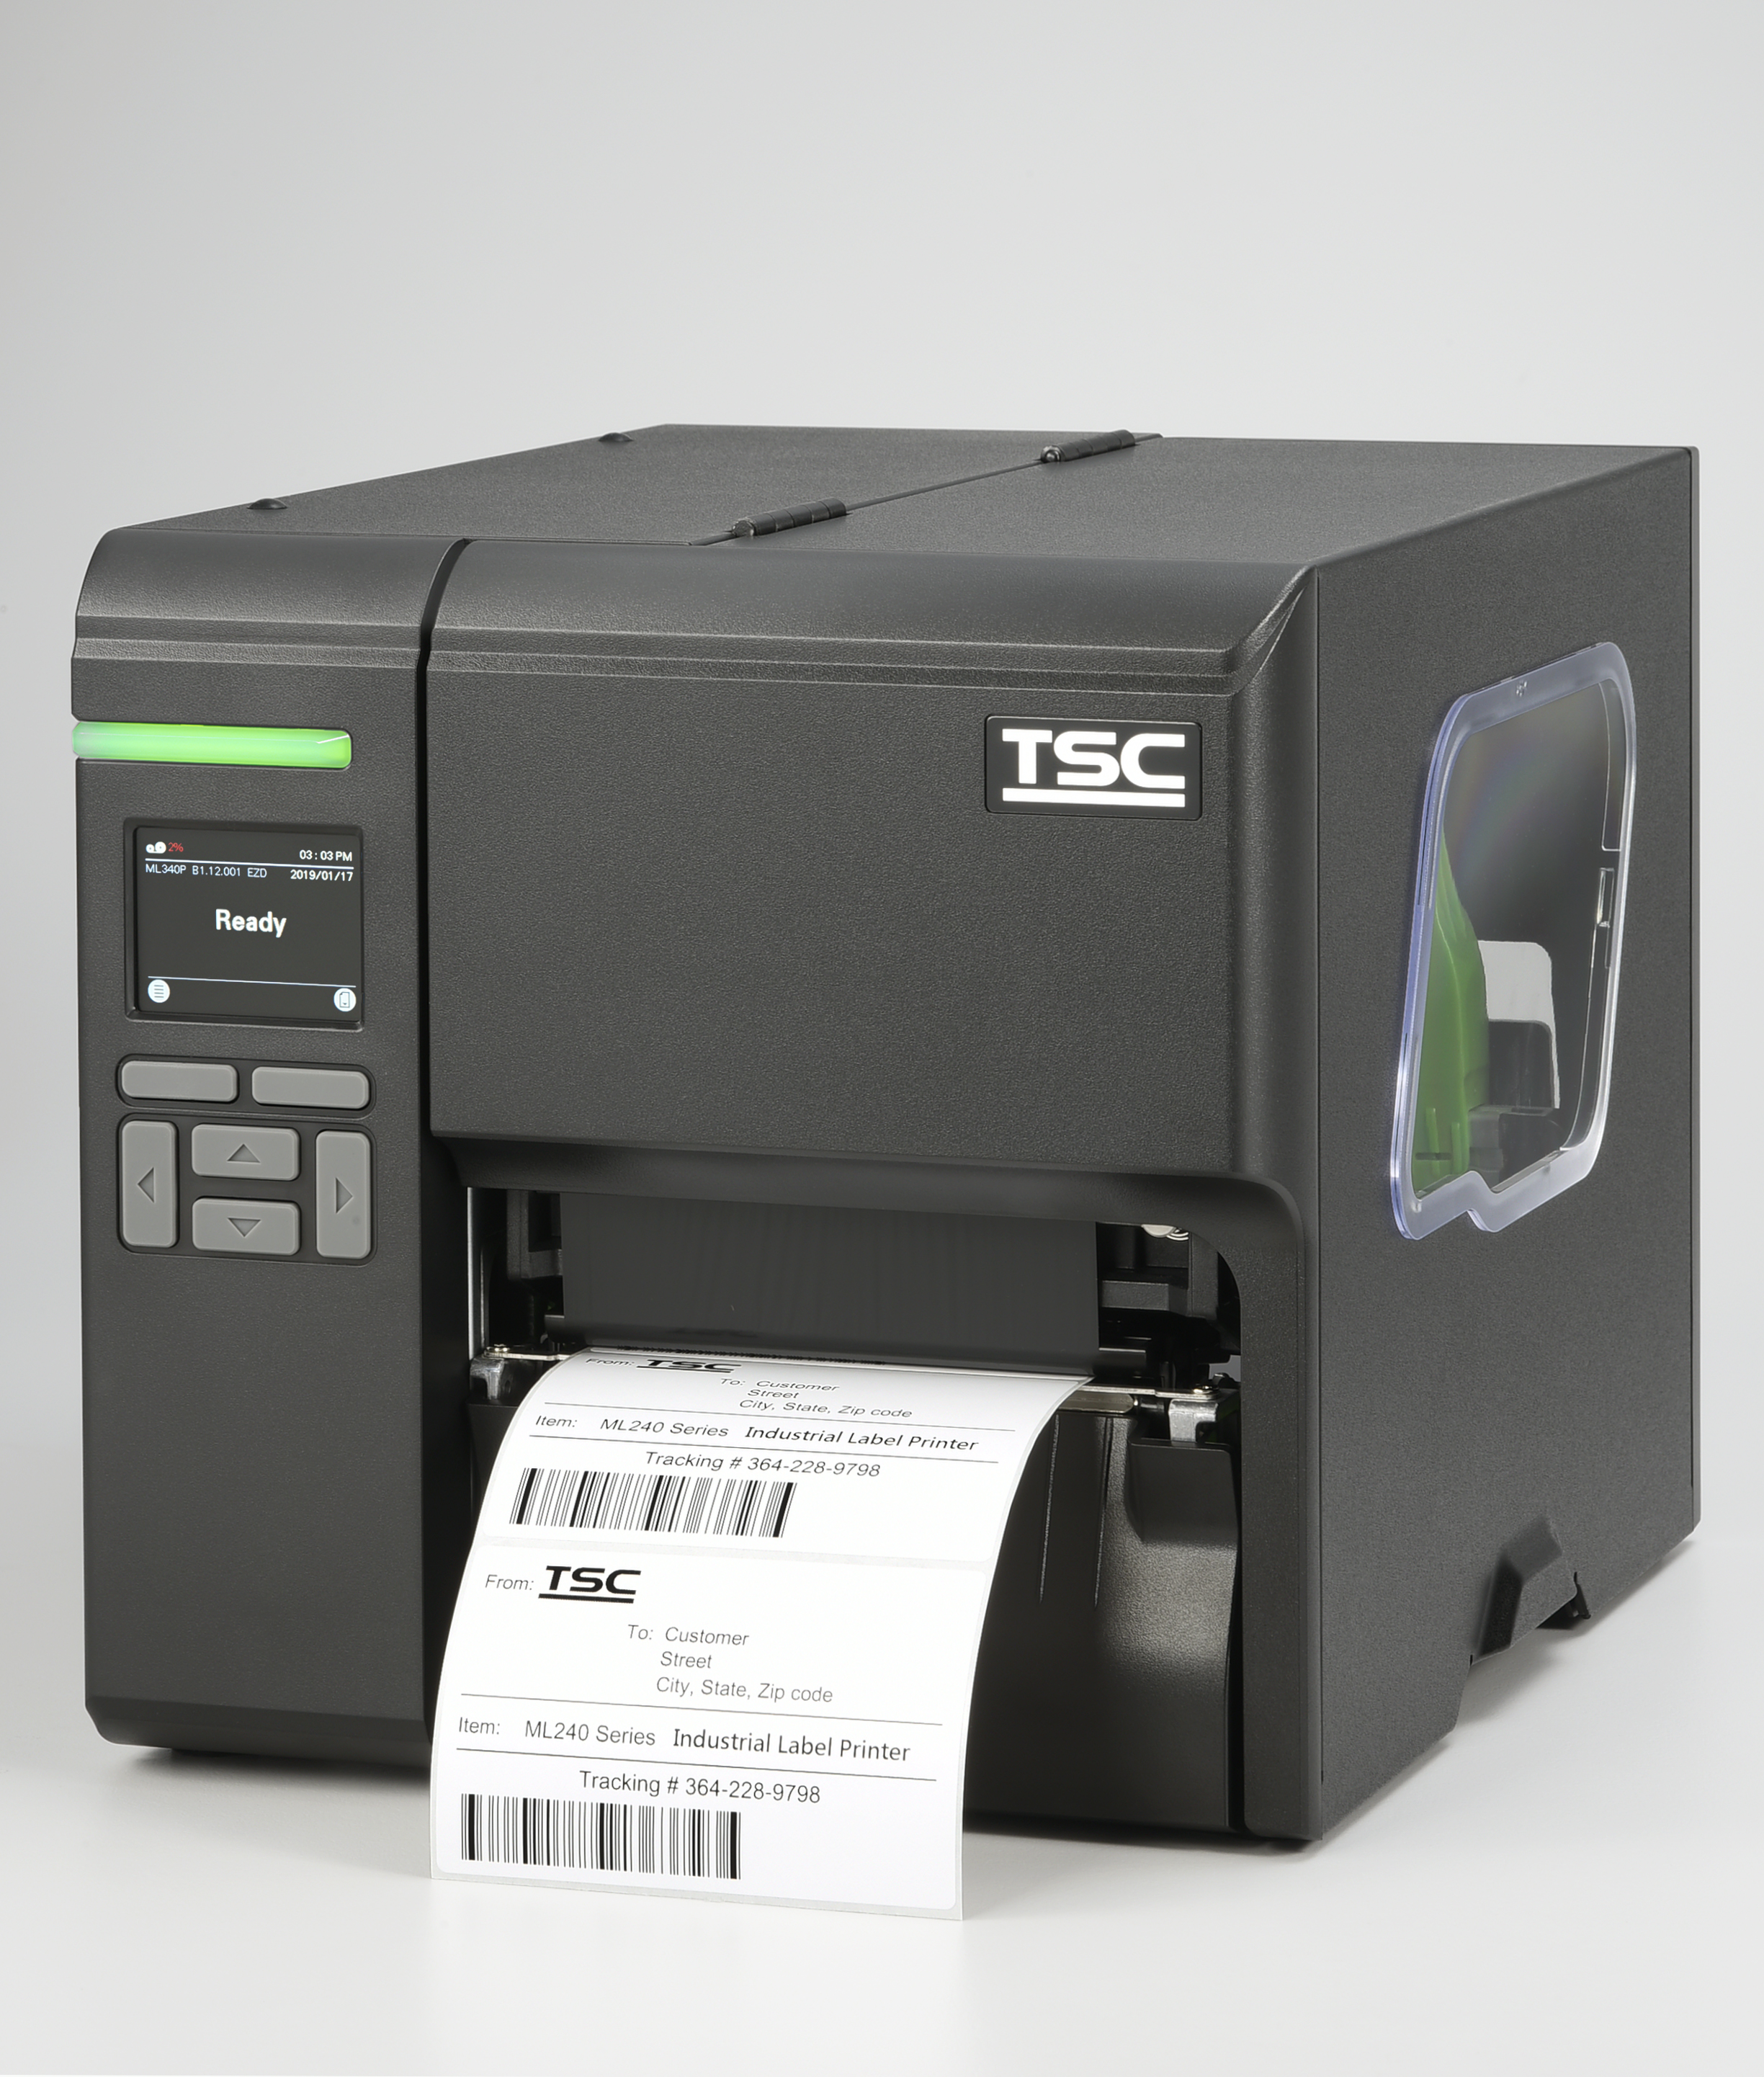 TSC Auto ID Technology EMEA Top drawer label printers